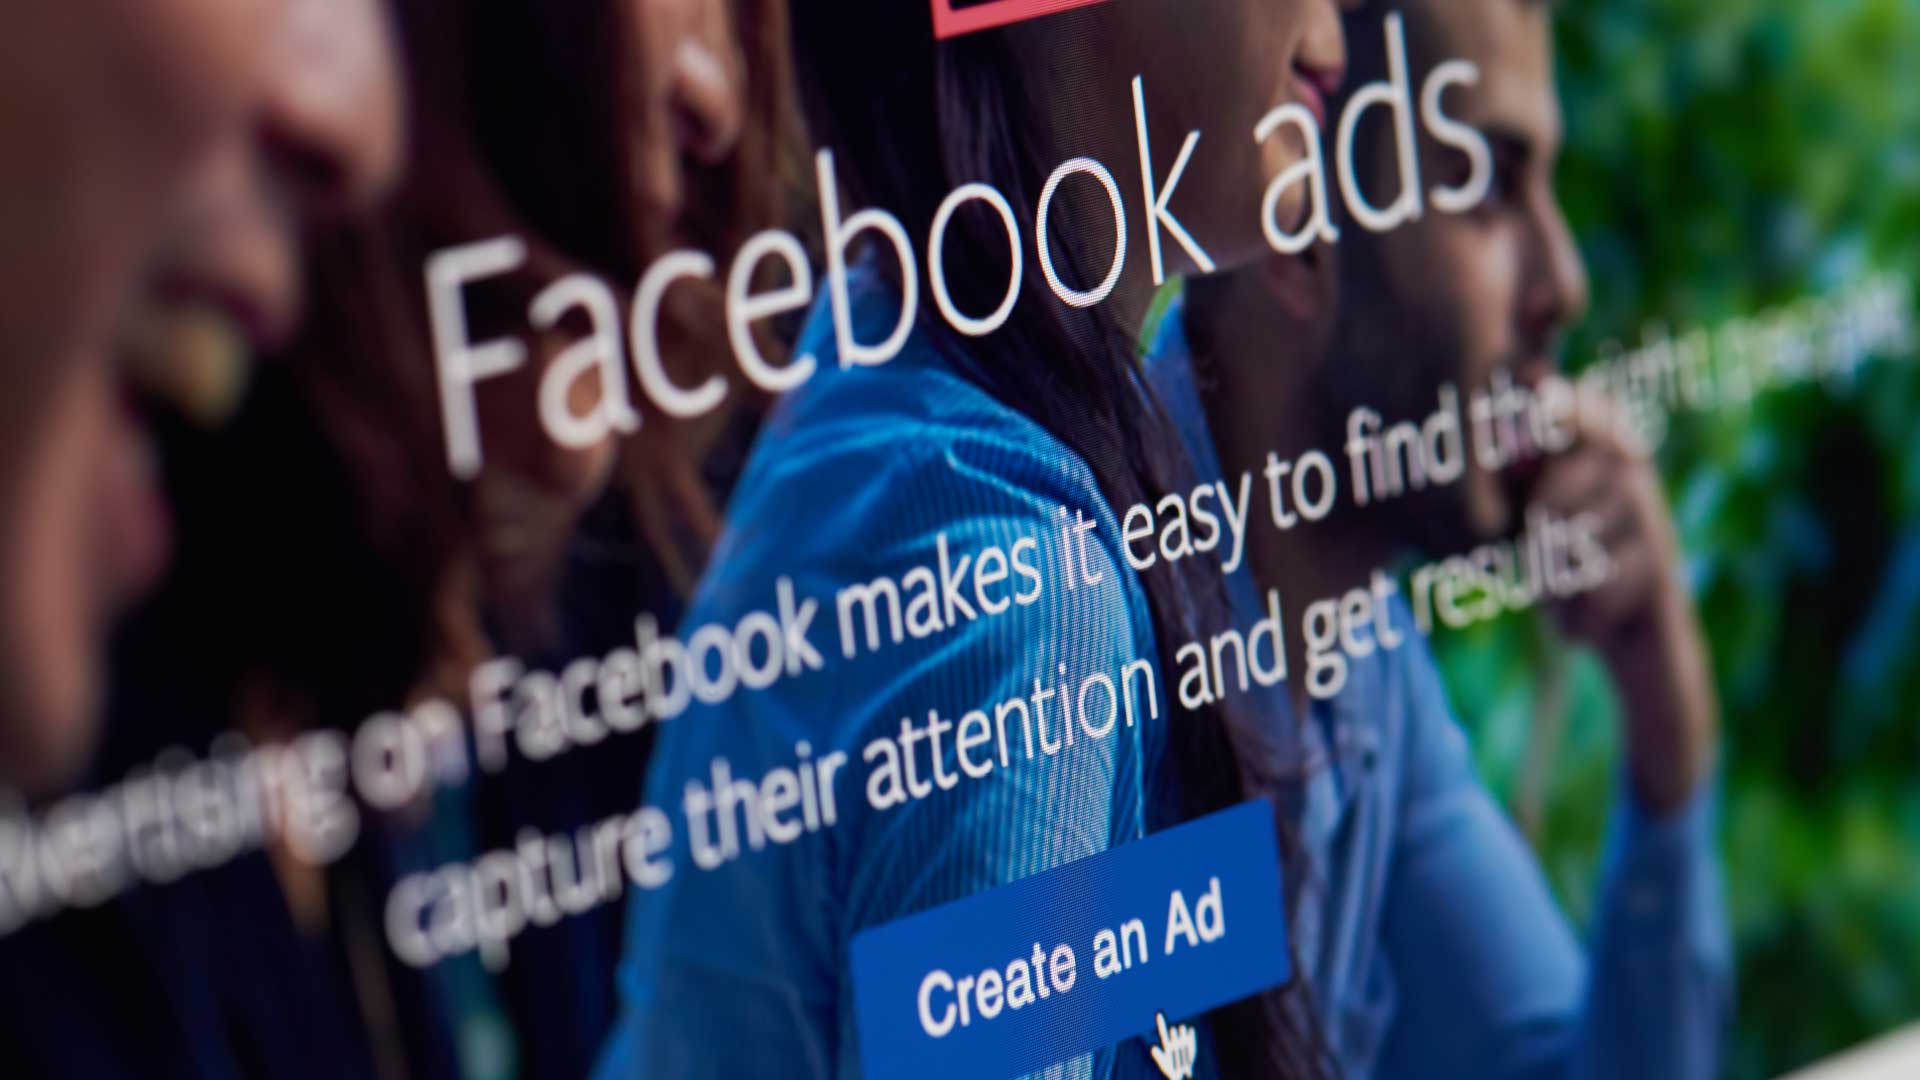 How retailers can avoid the 9 biggest pitfalls of Facebook advertising - Marketing Land